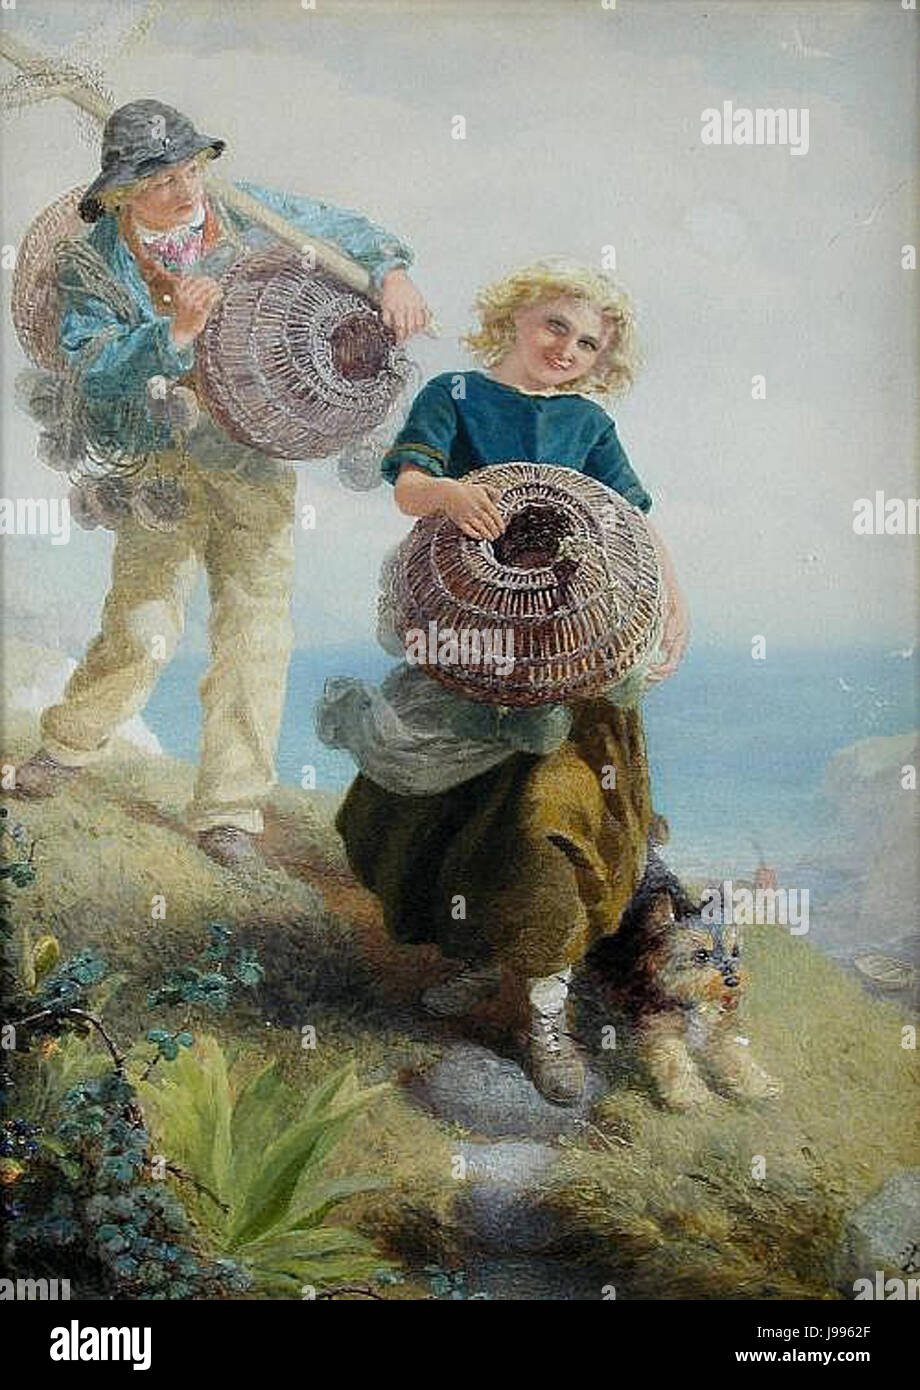 The Young Shrimpers by Alfred Downing Fripp - Stock Image